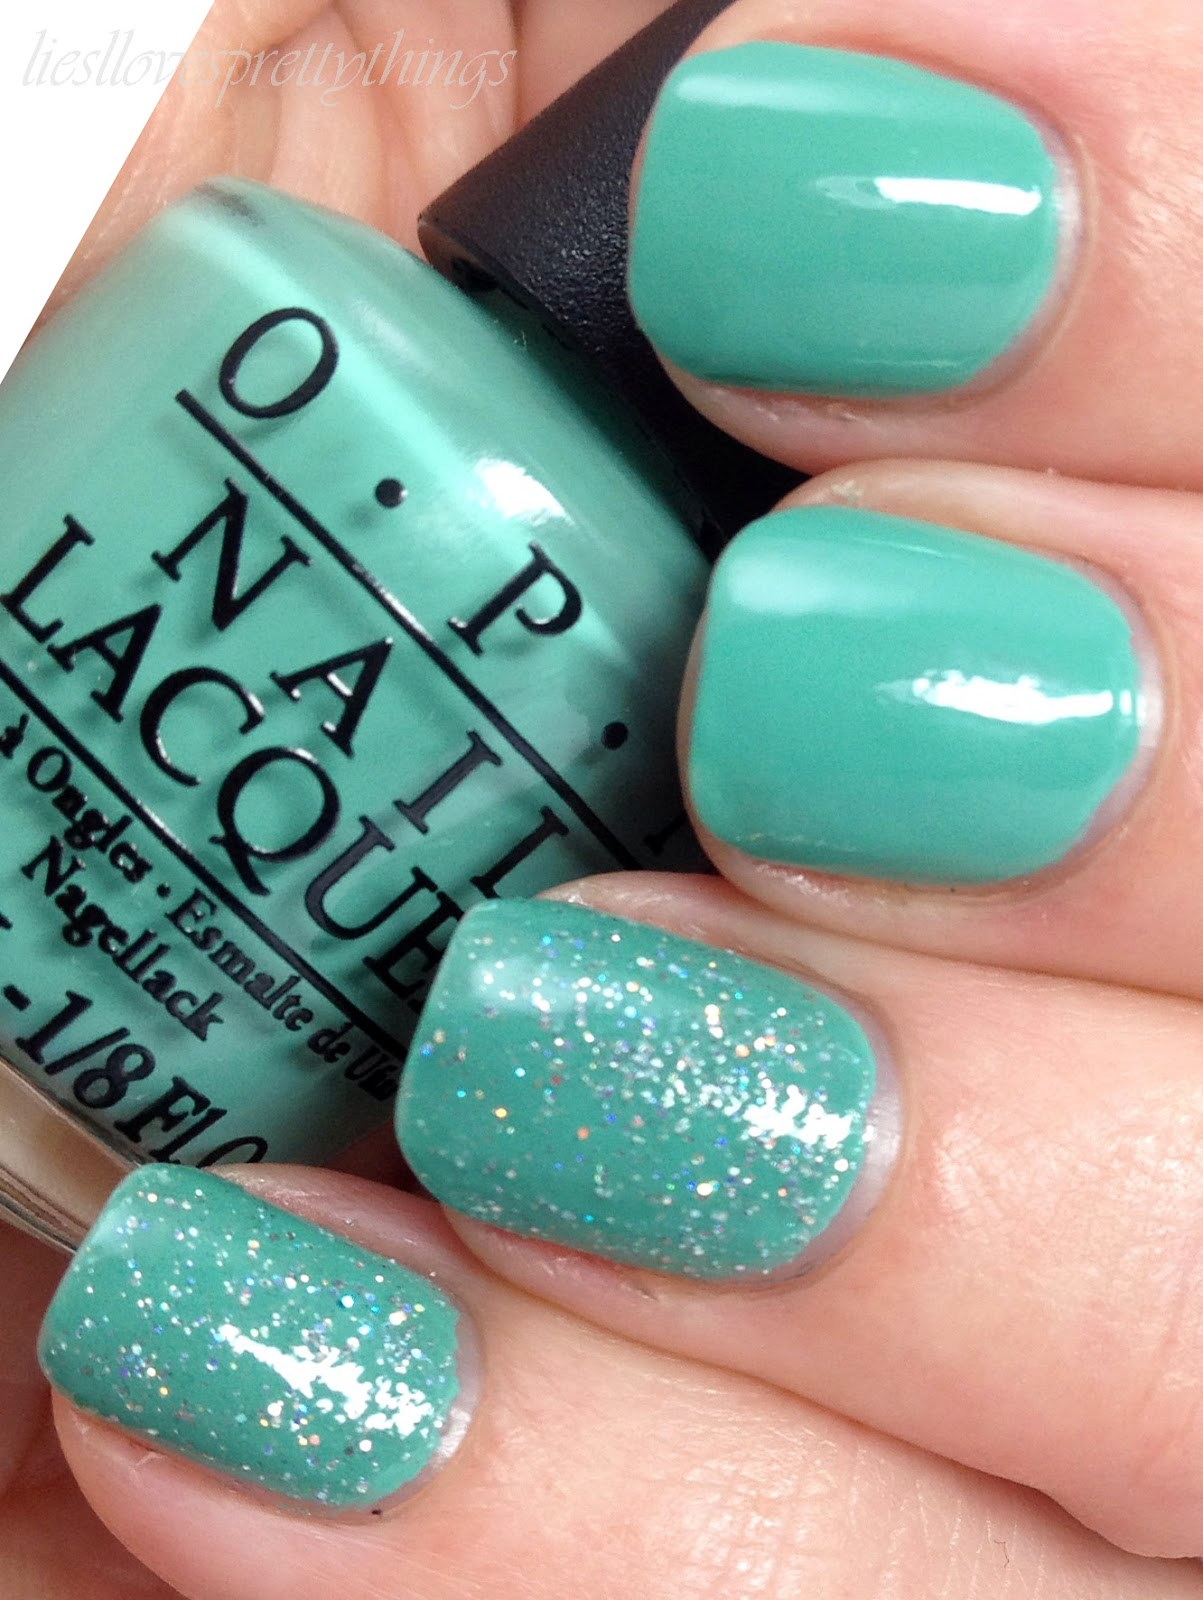 OPI My Dogsled Is a Hybrid + OPI My Voice Is a Little Norse swatch and review